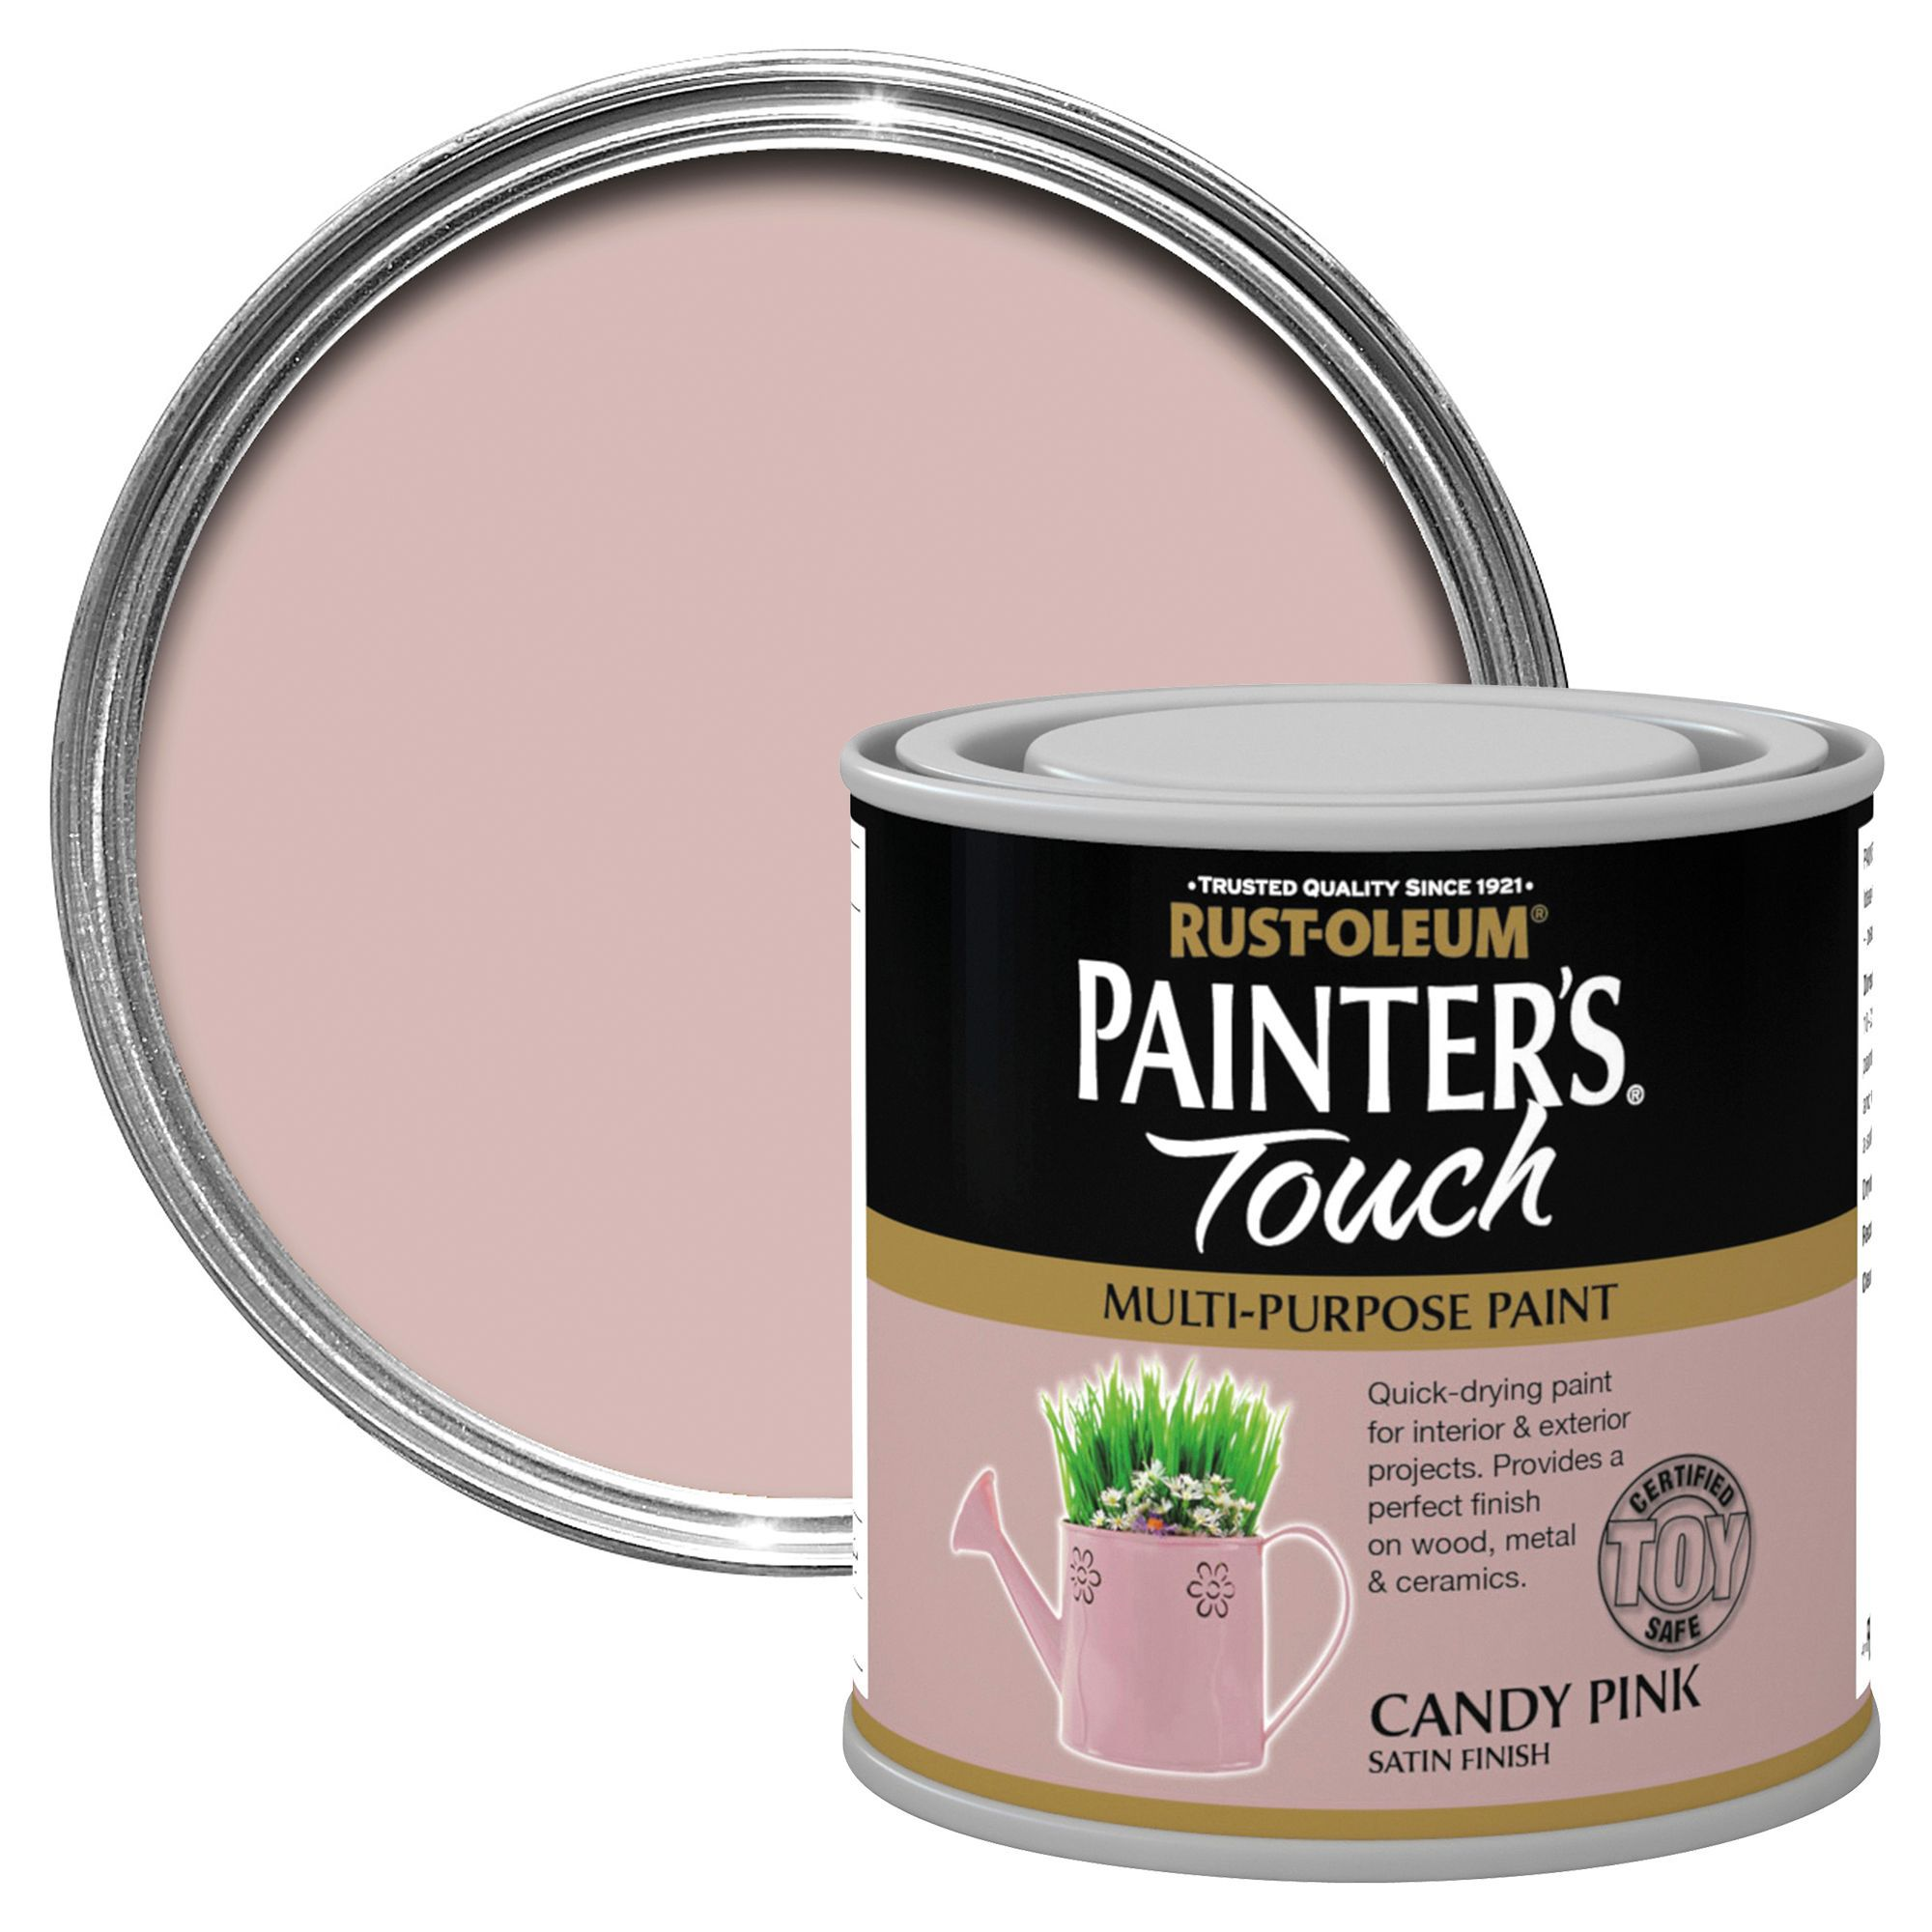 Rust-oleum Painter's Touch Interior & Exterior Candy Pink Gloss Multipurpose Paint 250ml